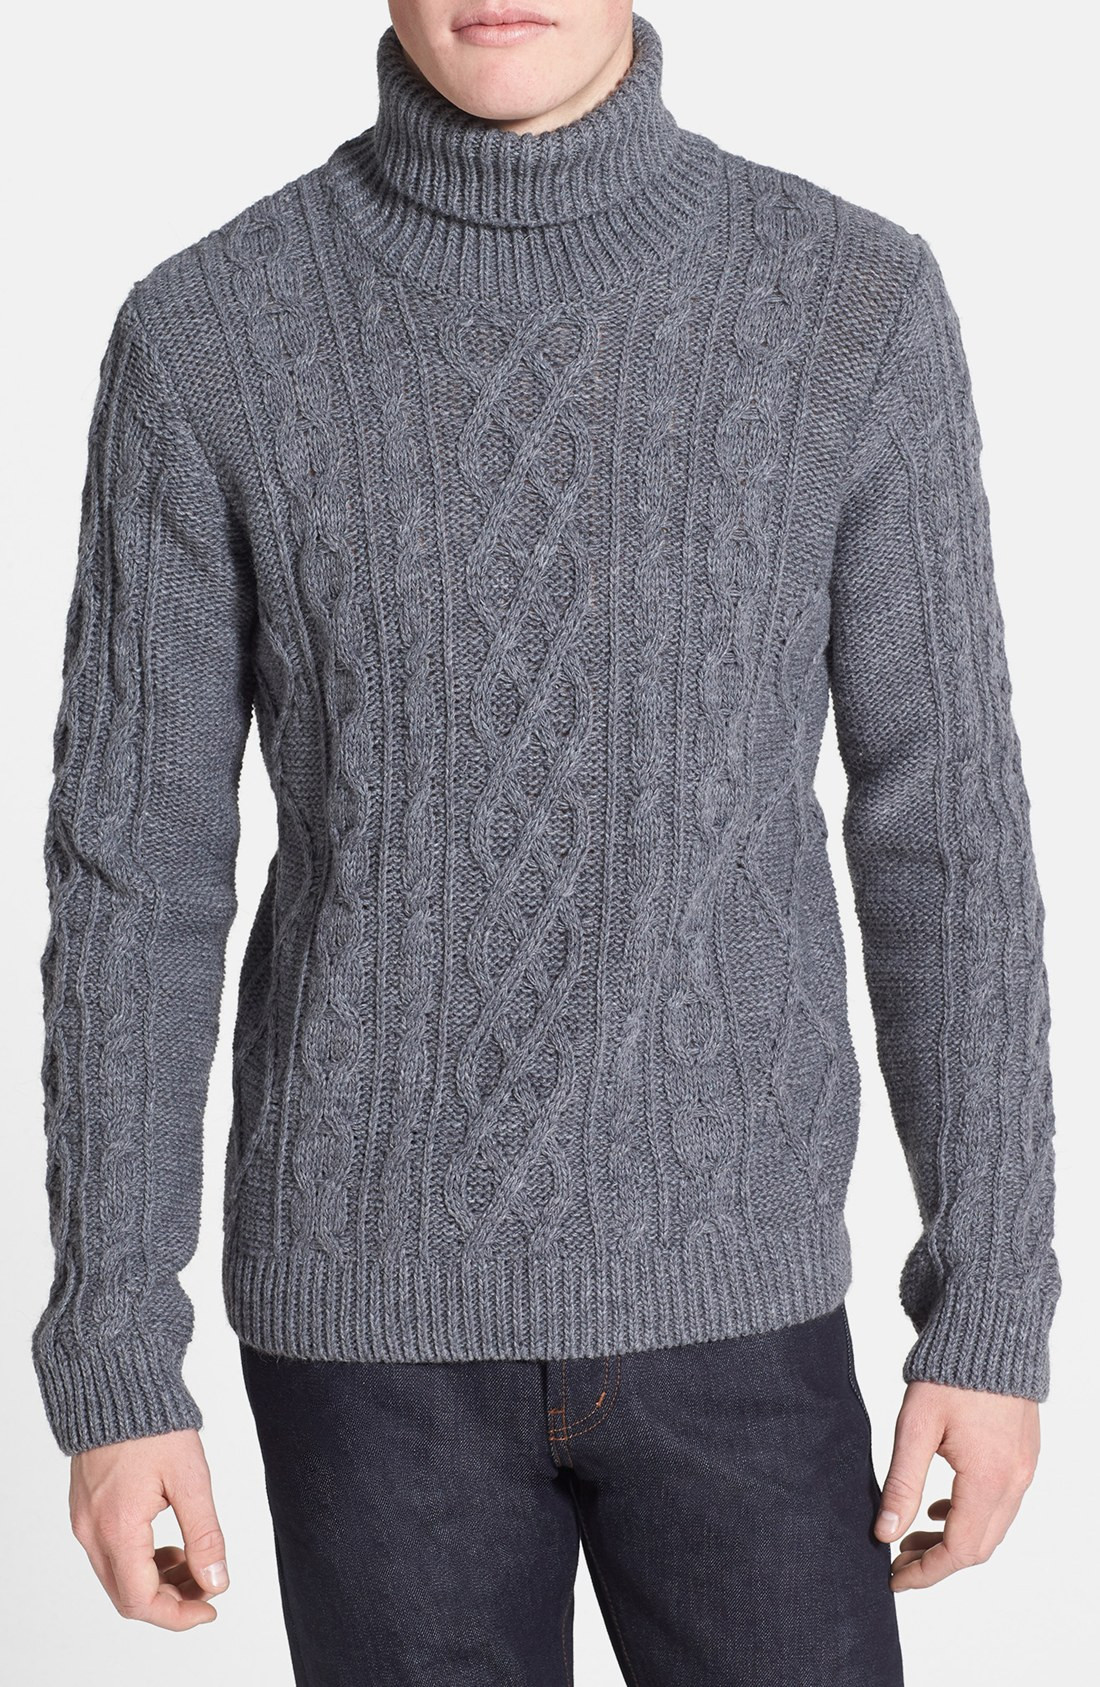 Chunky Cable Knit Sweater Mens Sweater Vest